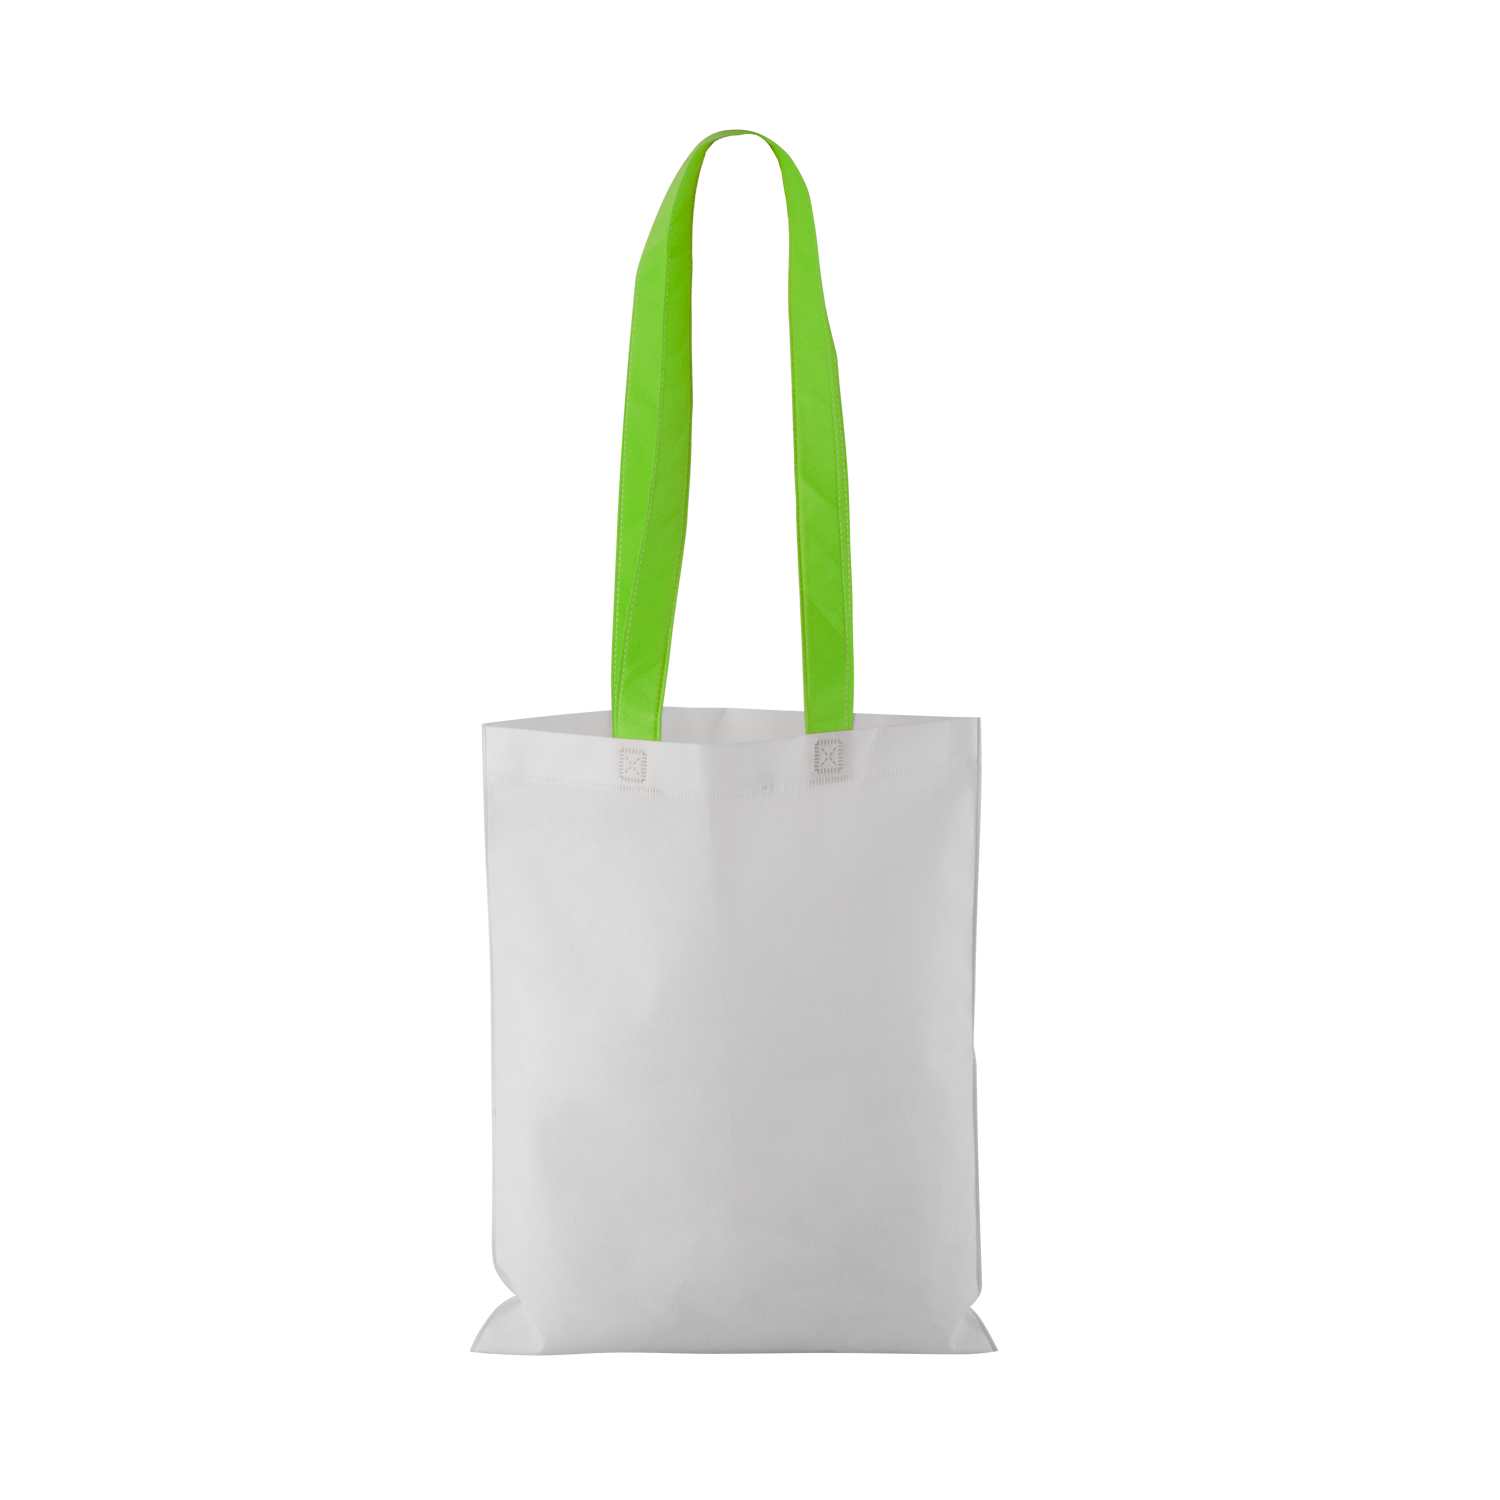 Non-woven Shopping bag with long handle (33 x 41,5 cm) - hmi17098-09 (Green)